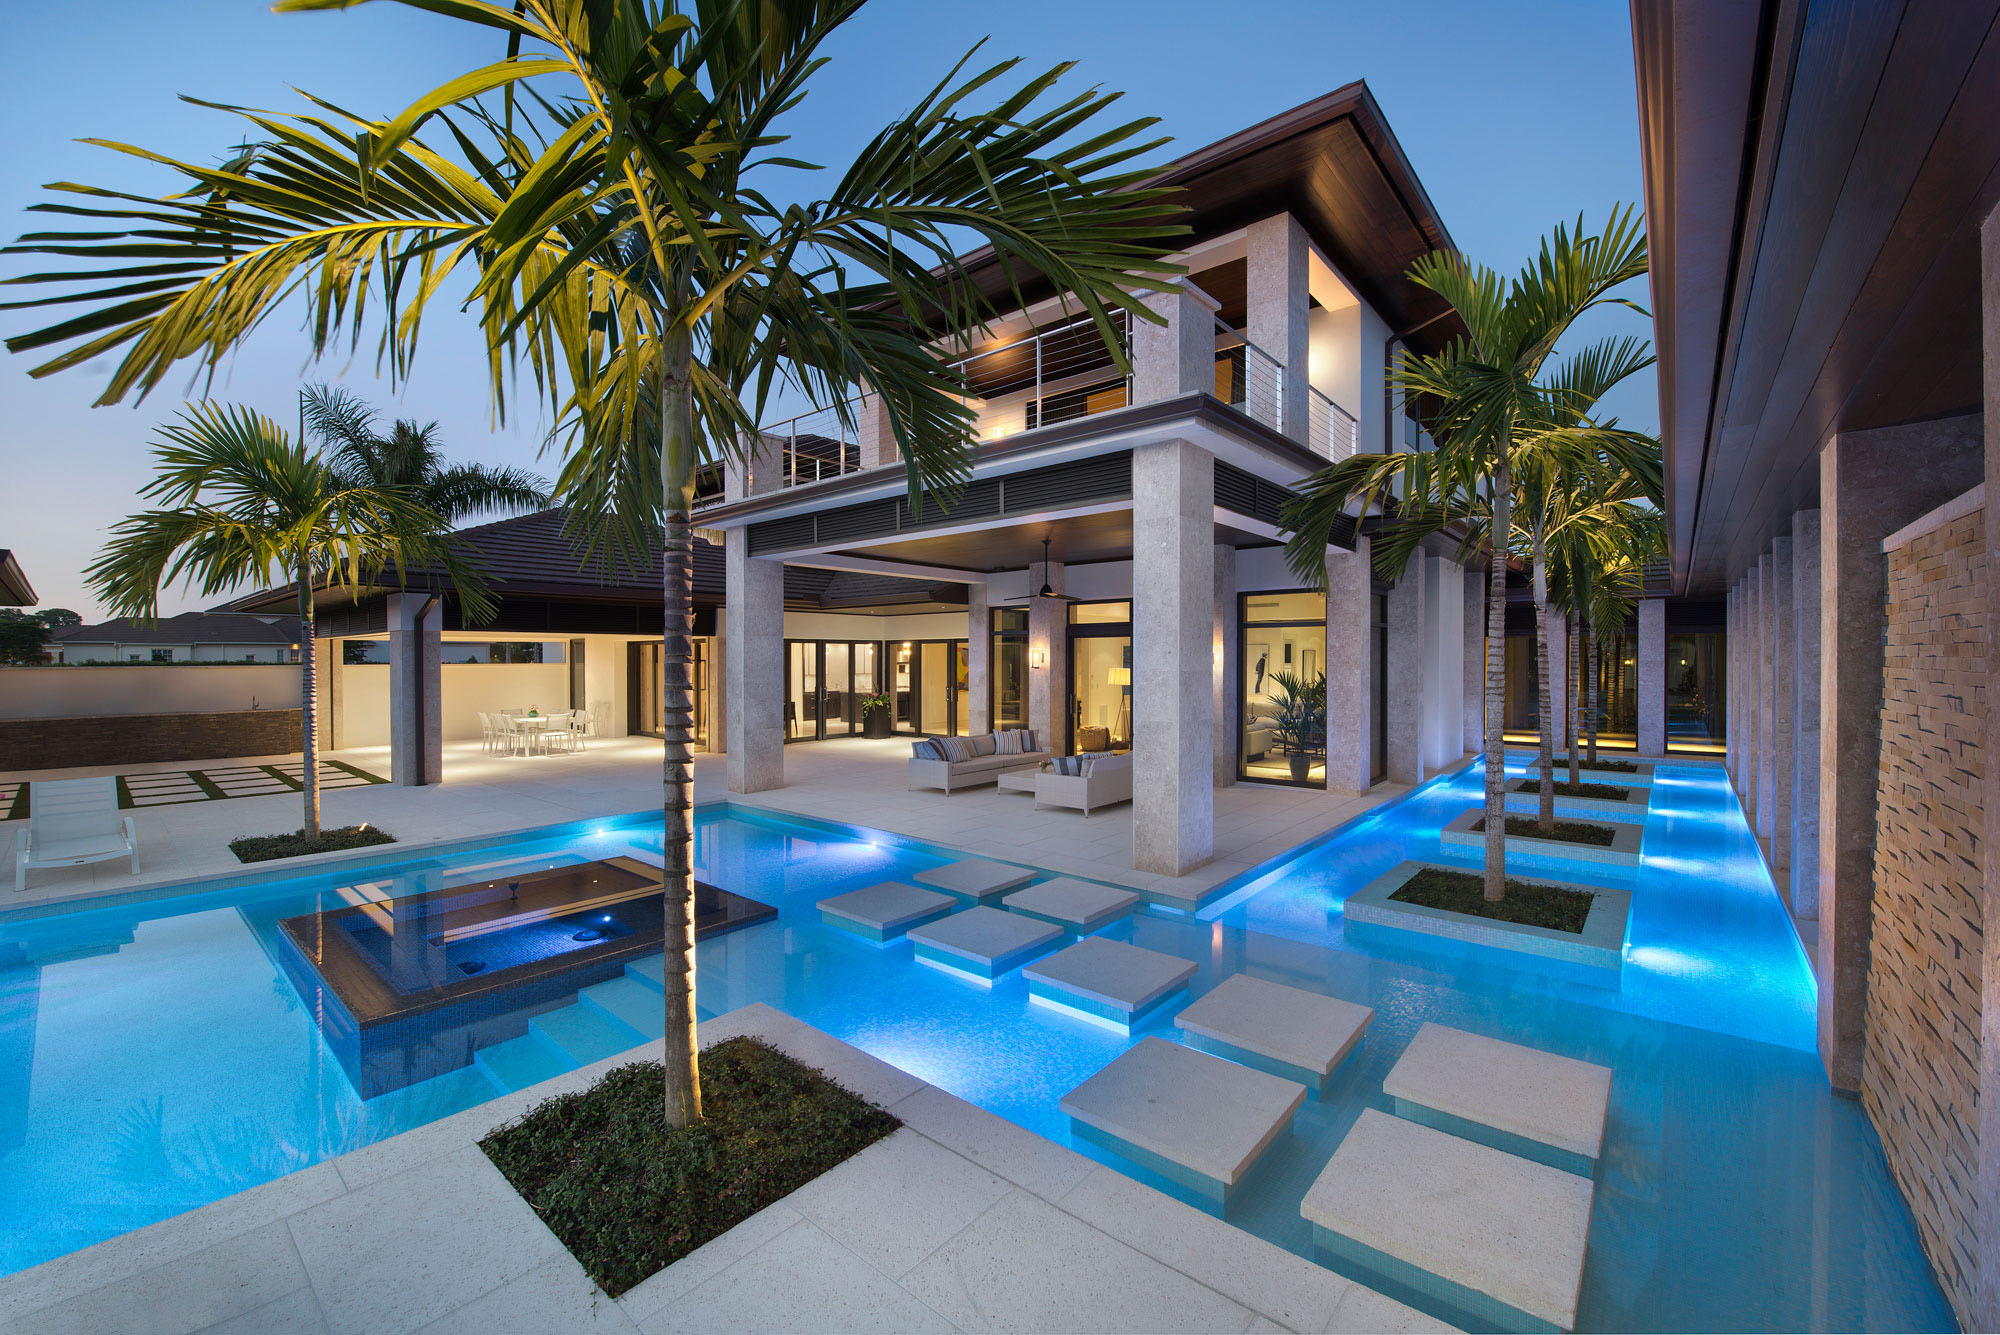 Custom dream home in florida with elegant swimming pool for Modern house designs with indoor pool